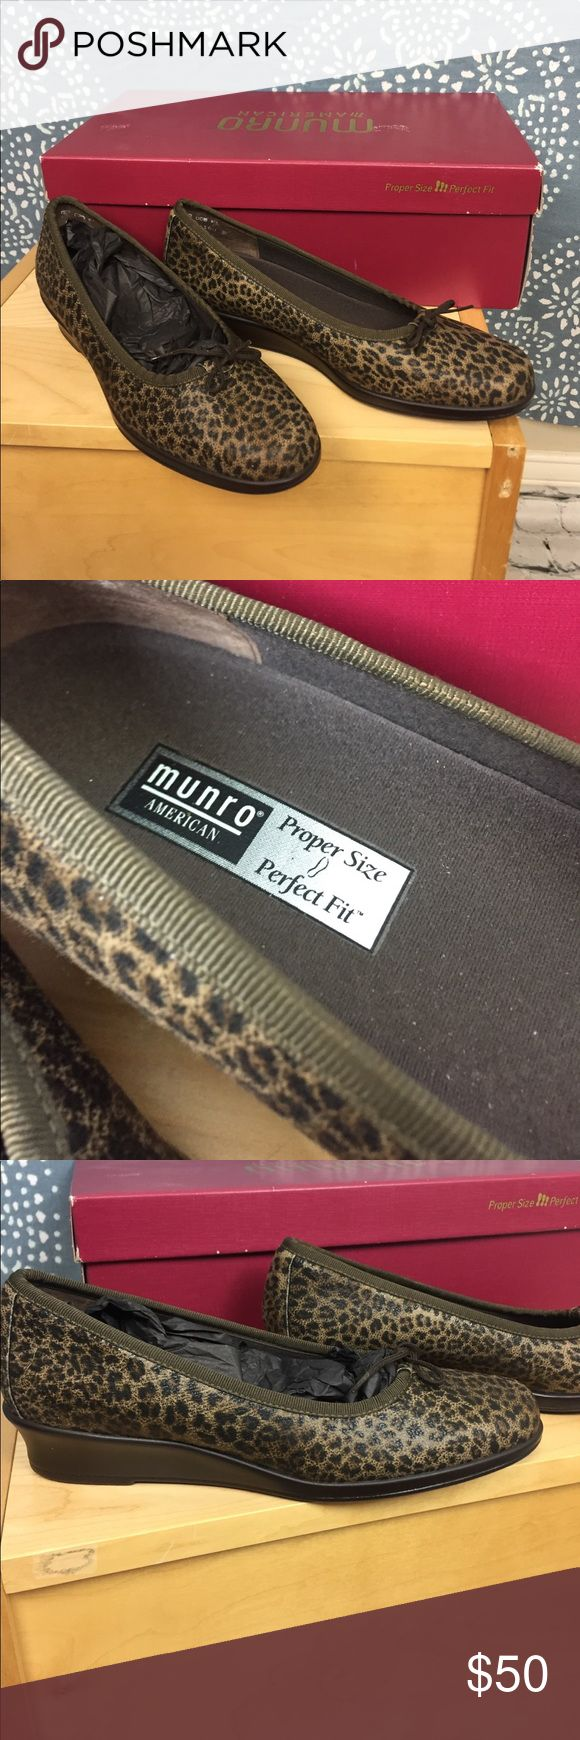 """NWT Munro Walking Wedge Anima Print Shoes Walking wedge shoe from Munro. They have a leopard print with brown ties. Known for their comfort, these shoes have shock absorbing heels, anatomically molded insoles, and provide arch support. The wedge is about 1"""".  Size 6M. Munro Shoes"""